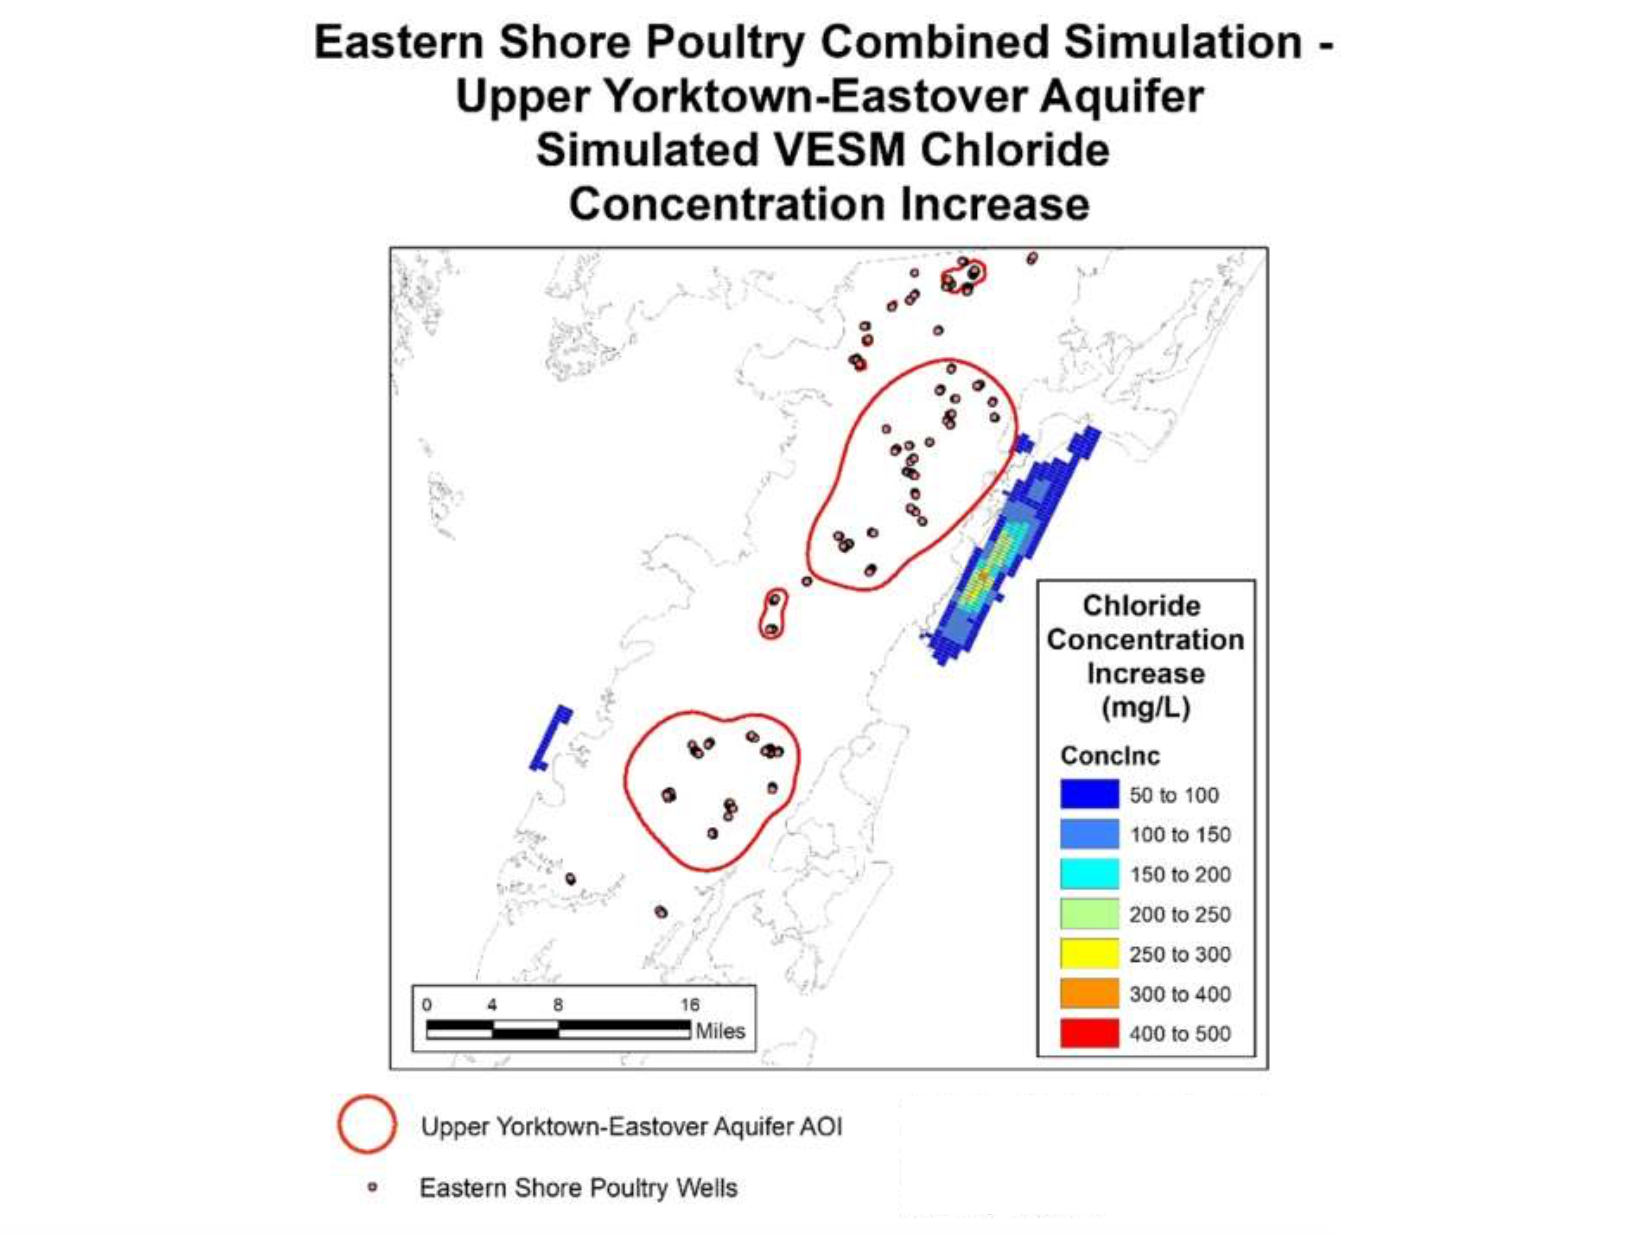 Map of simulated chloride concentration increase for Eastern Shore of Virginia poultry operation combined simulation